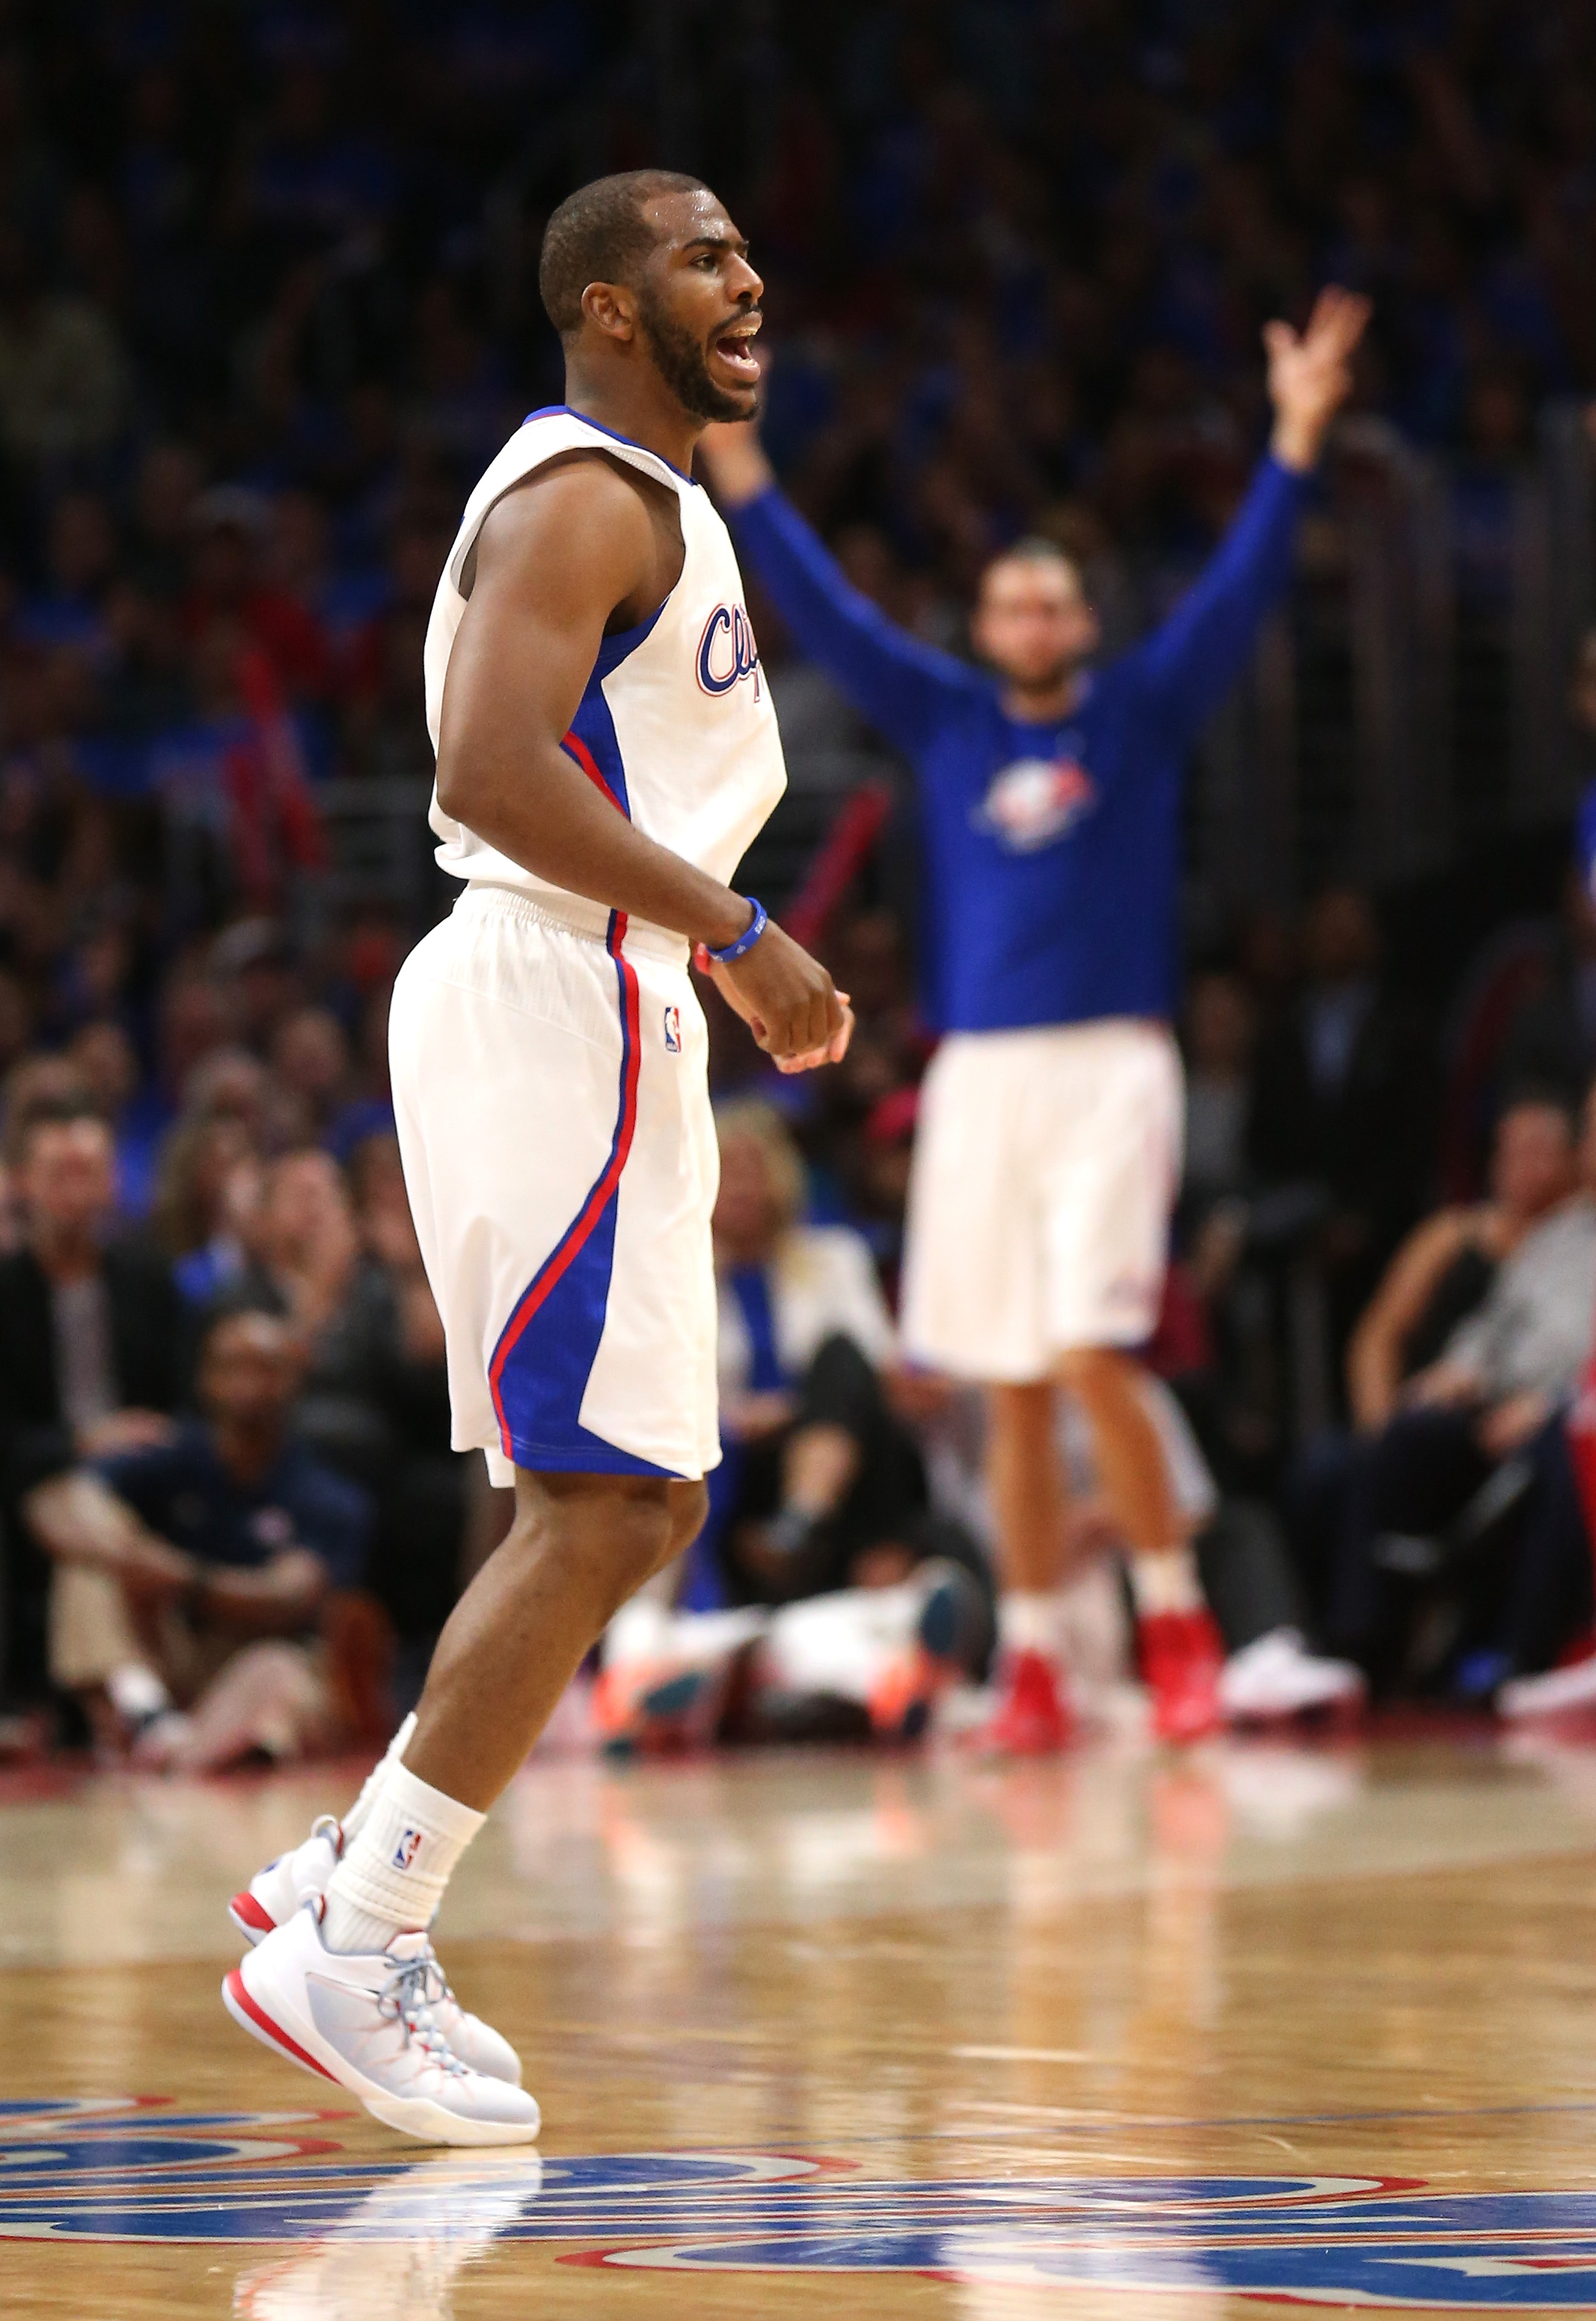 LOS ANGELES, CA - MAY 08: Chris Paul #3 of the Los Angeles Clippers reacts ater making a three point basket against the Houston Rockets during Game Three of the Western Conference semifinals of the 2015 NBA Playoffs at Staples Center on May 8, 2015 in Los